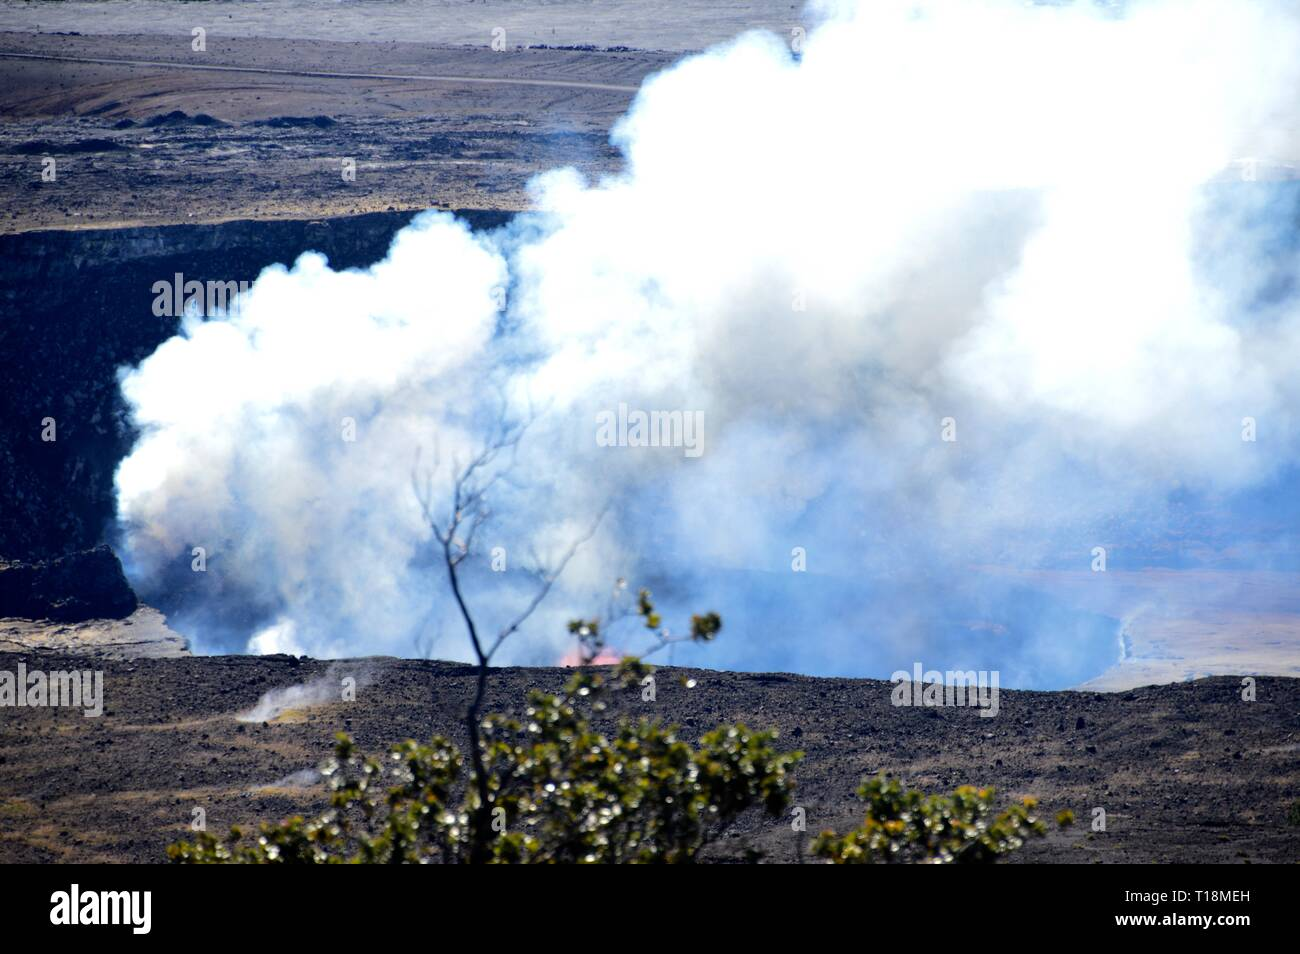 Kilauea Crater in Hawaii preparing its outburst - Stock Image